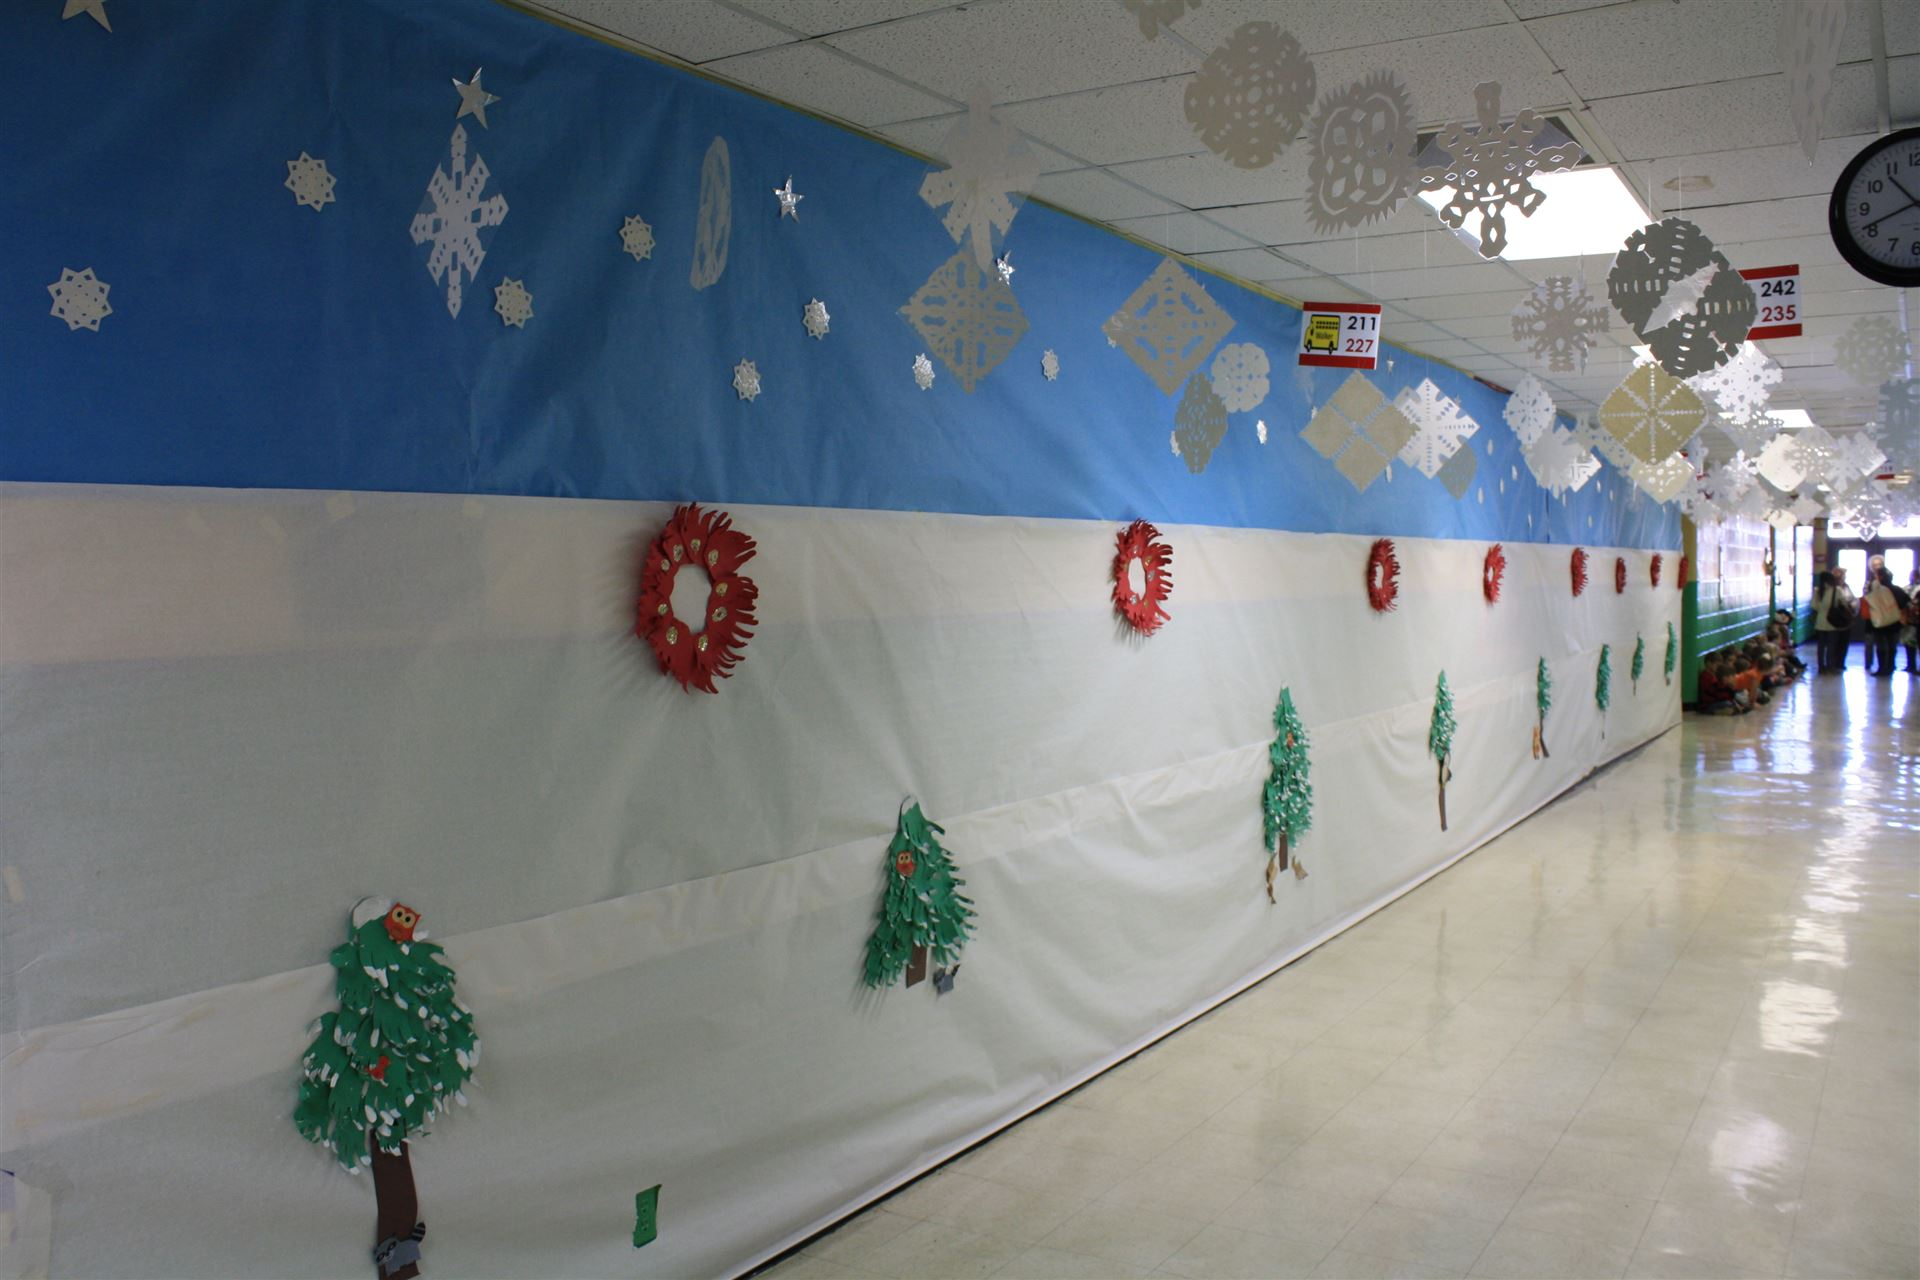 Tour The Hallways At Walker Elementary To Enjoy The